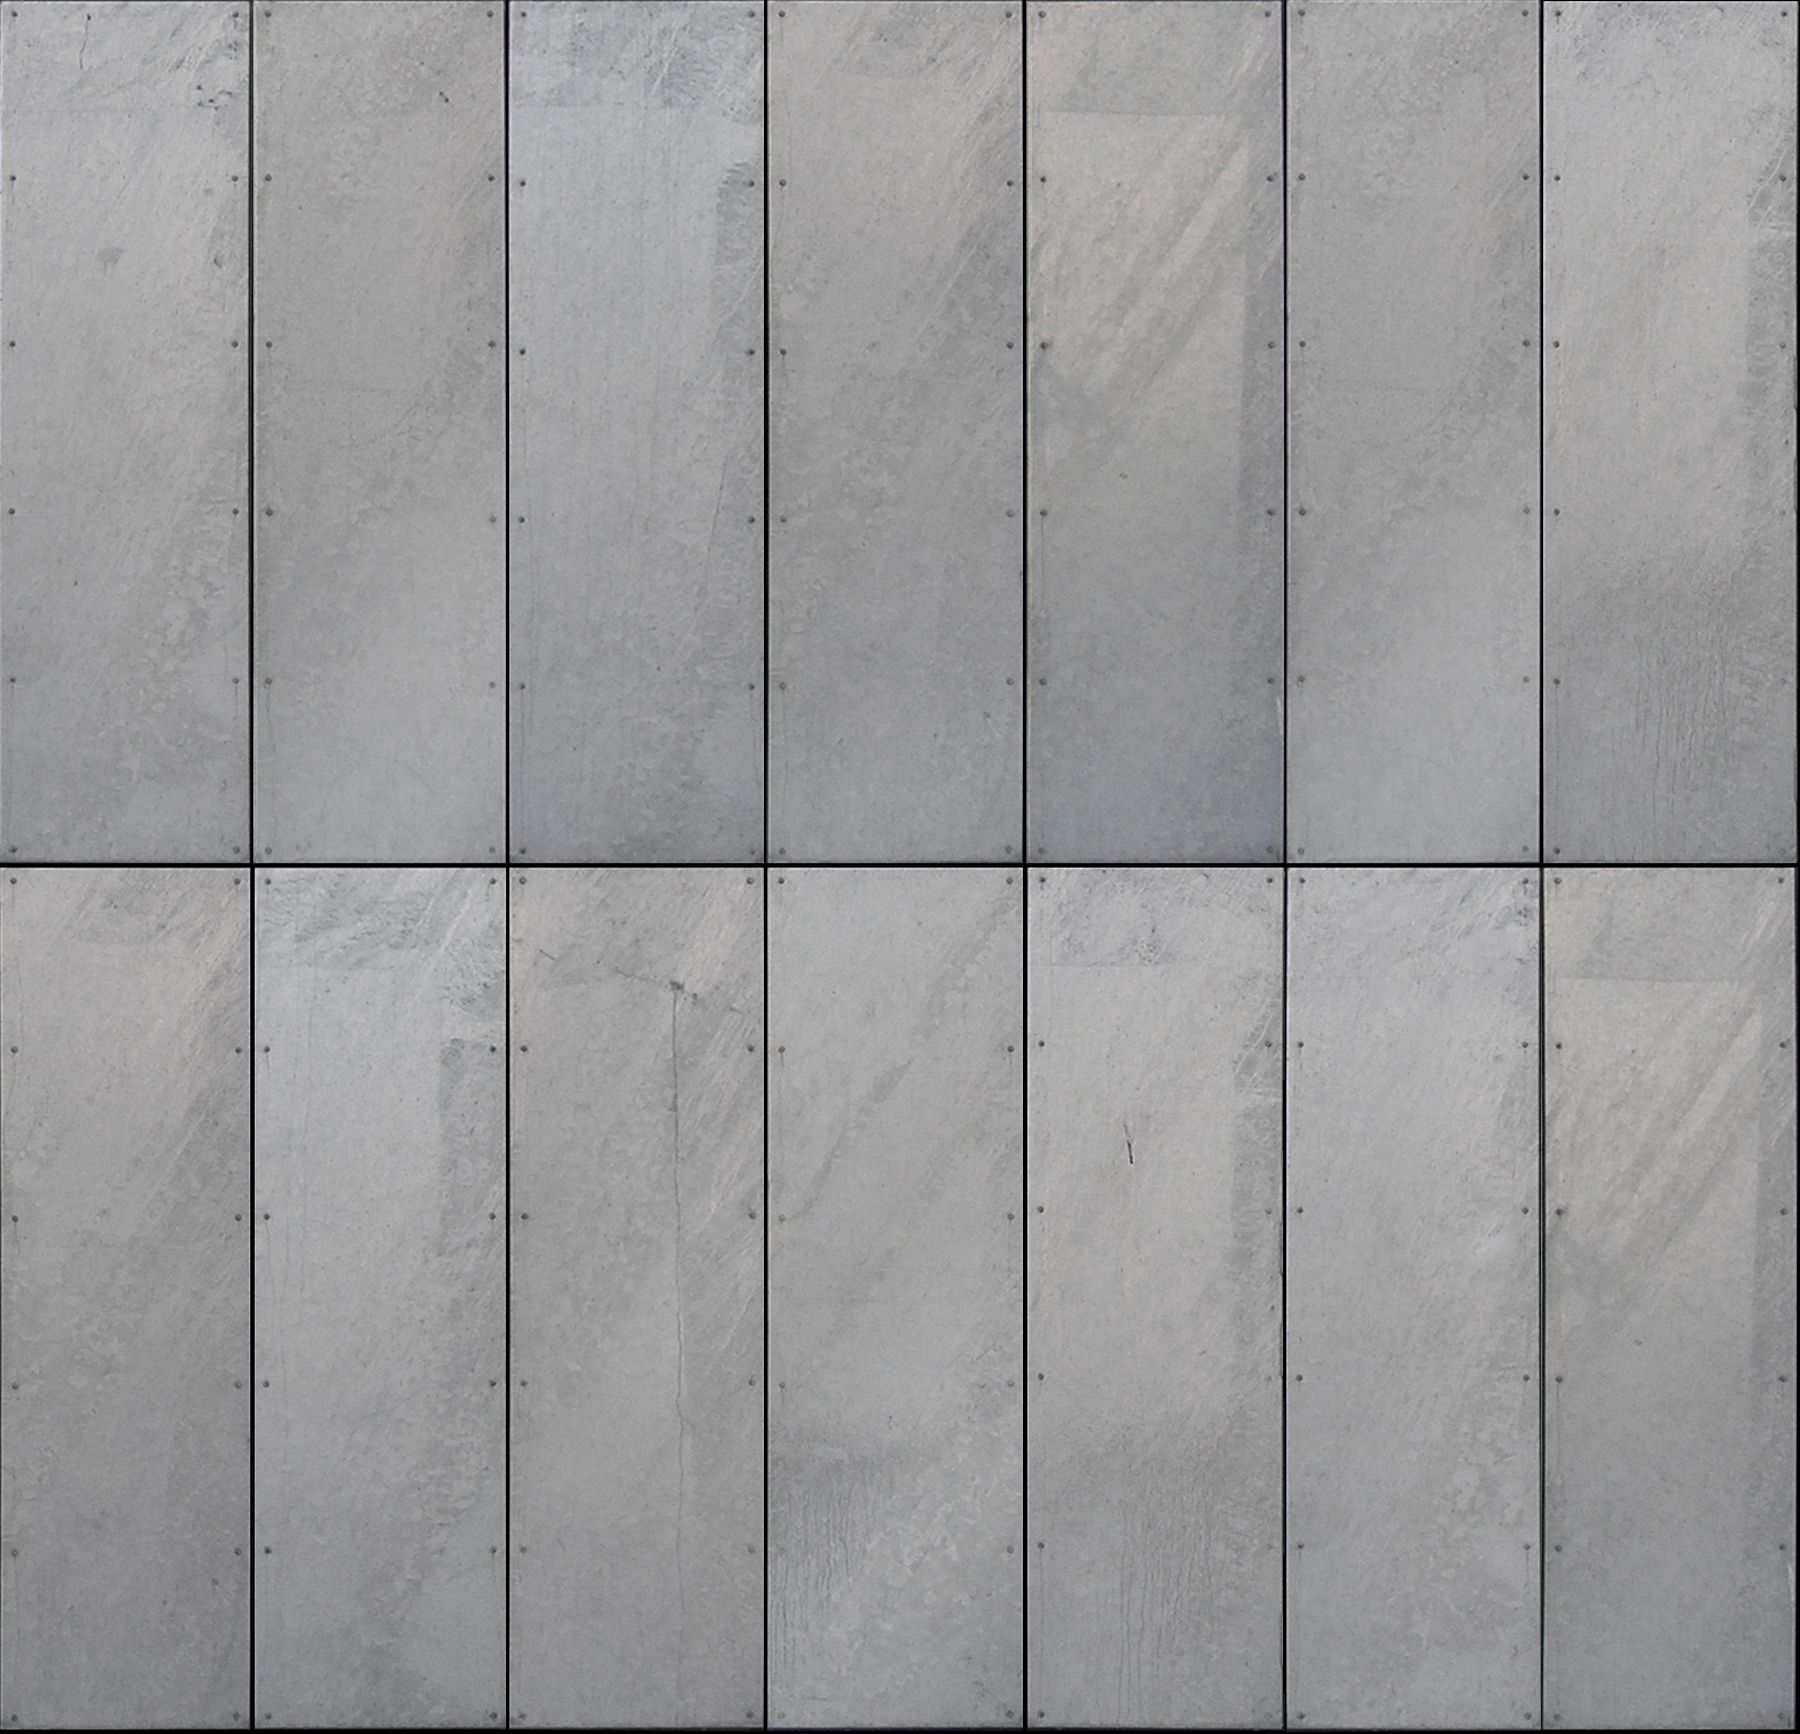 Aluminium Panel Gray : Seamless metal panel texture imgkid the image